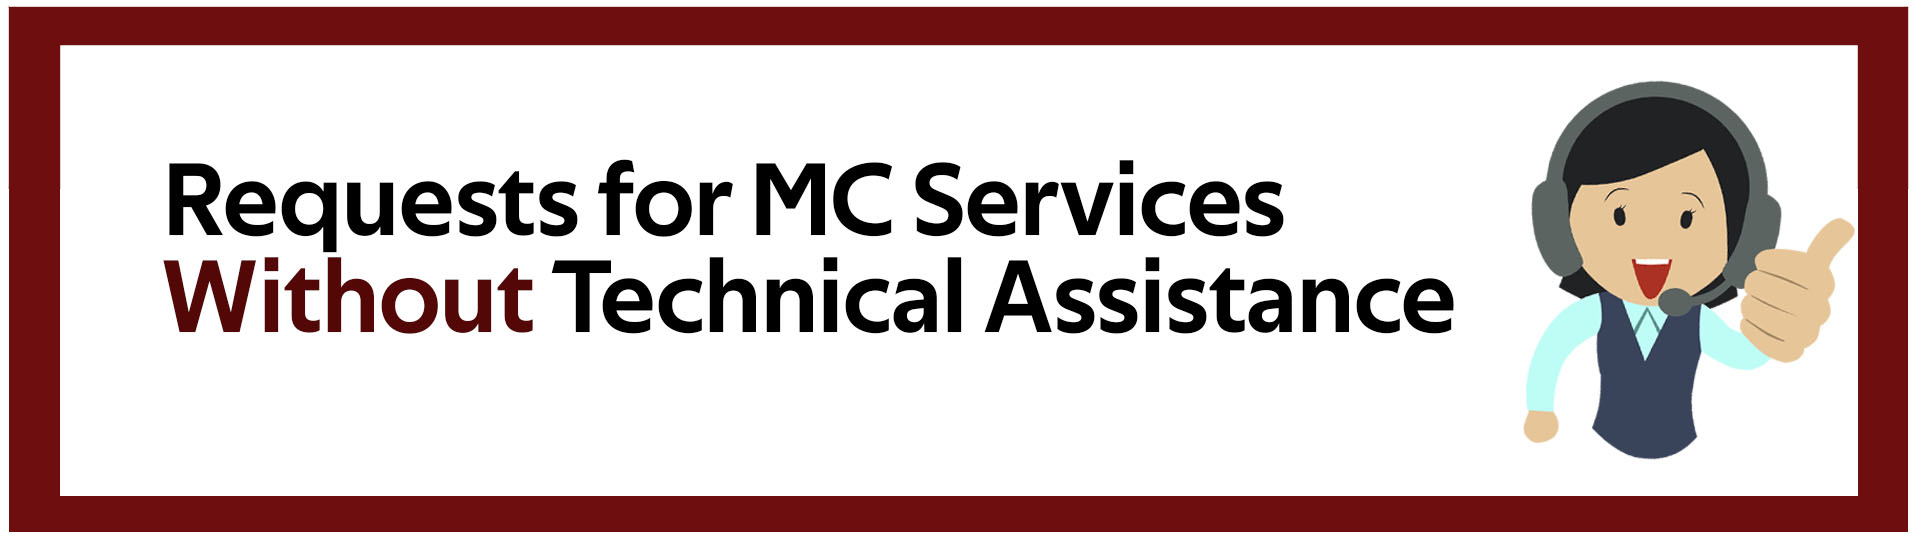 Request for MC Services Without Technical Assistance